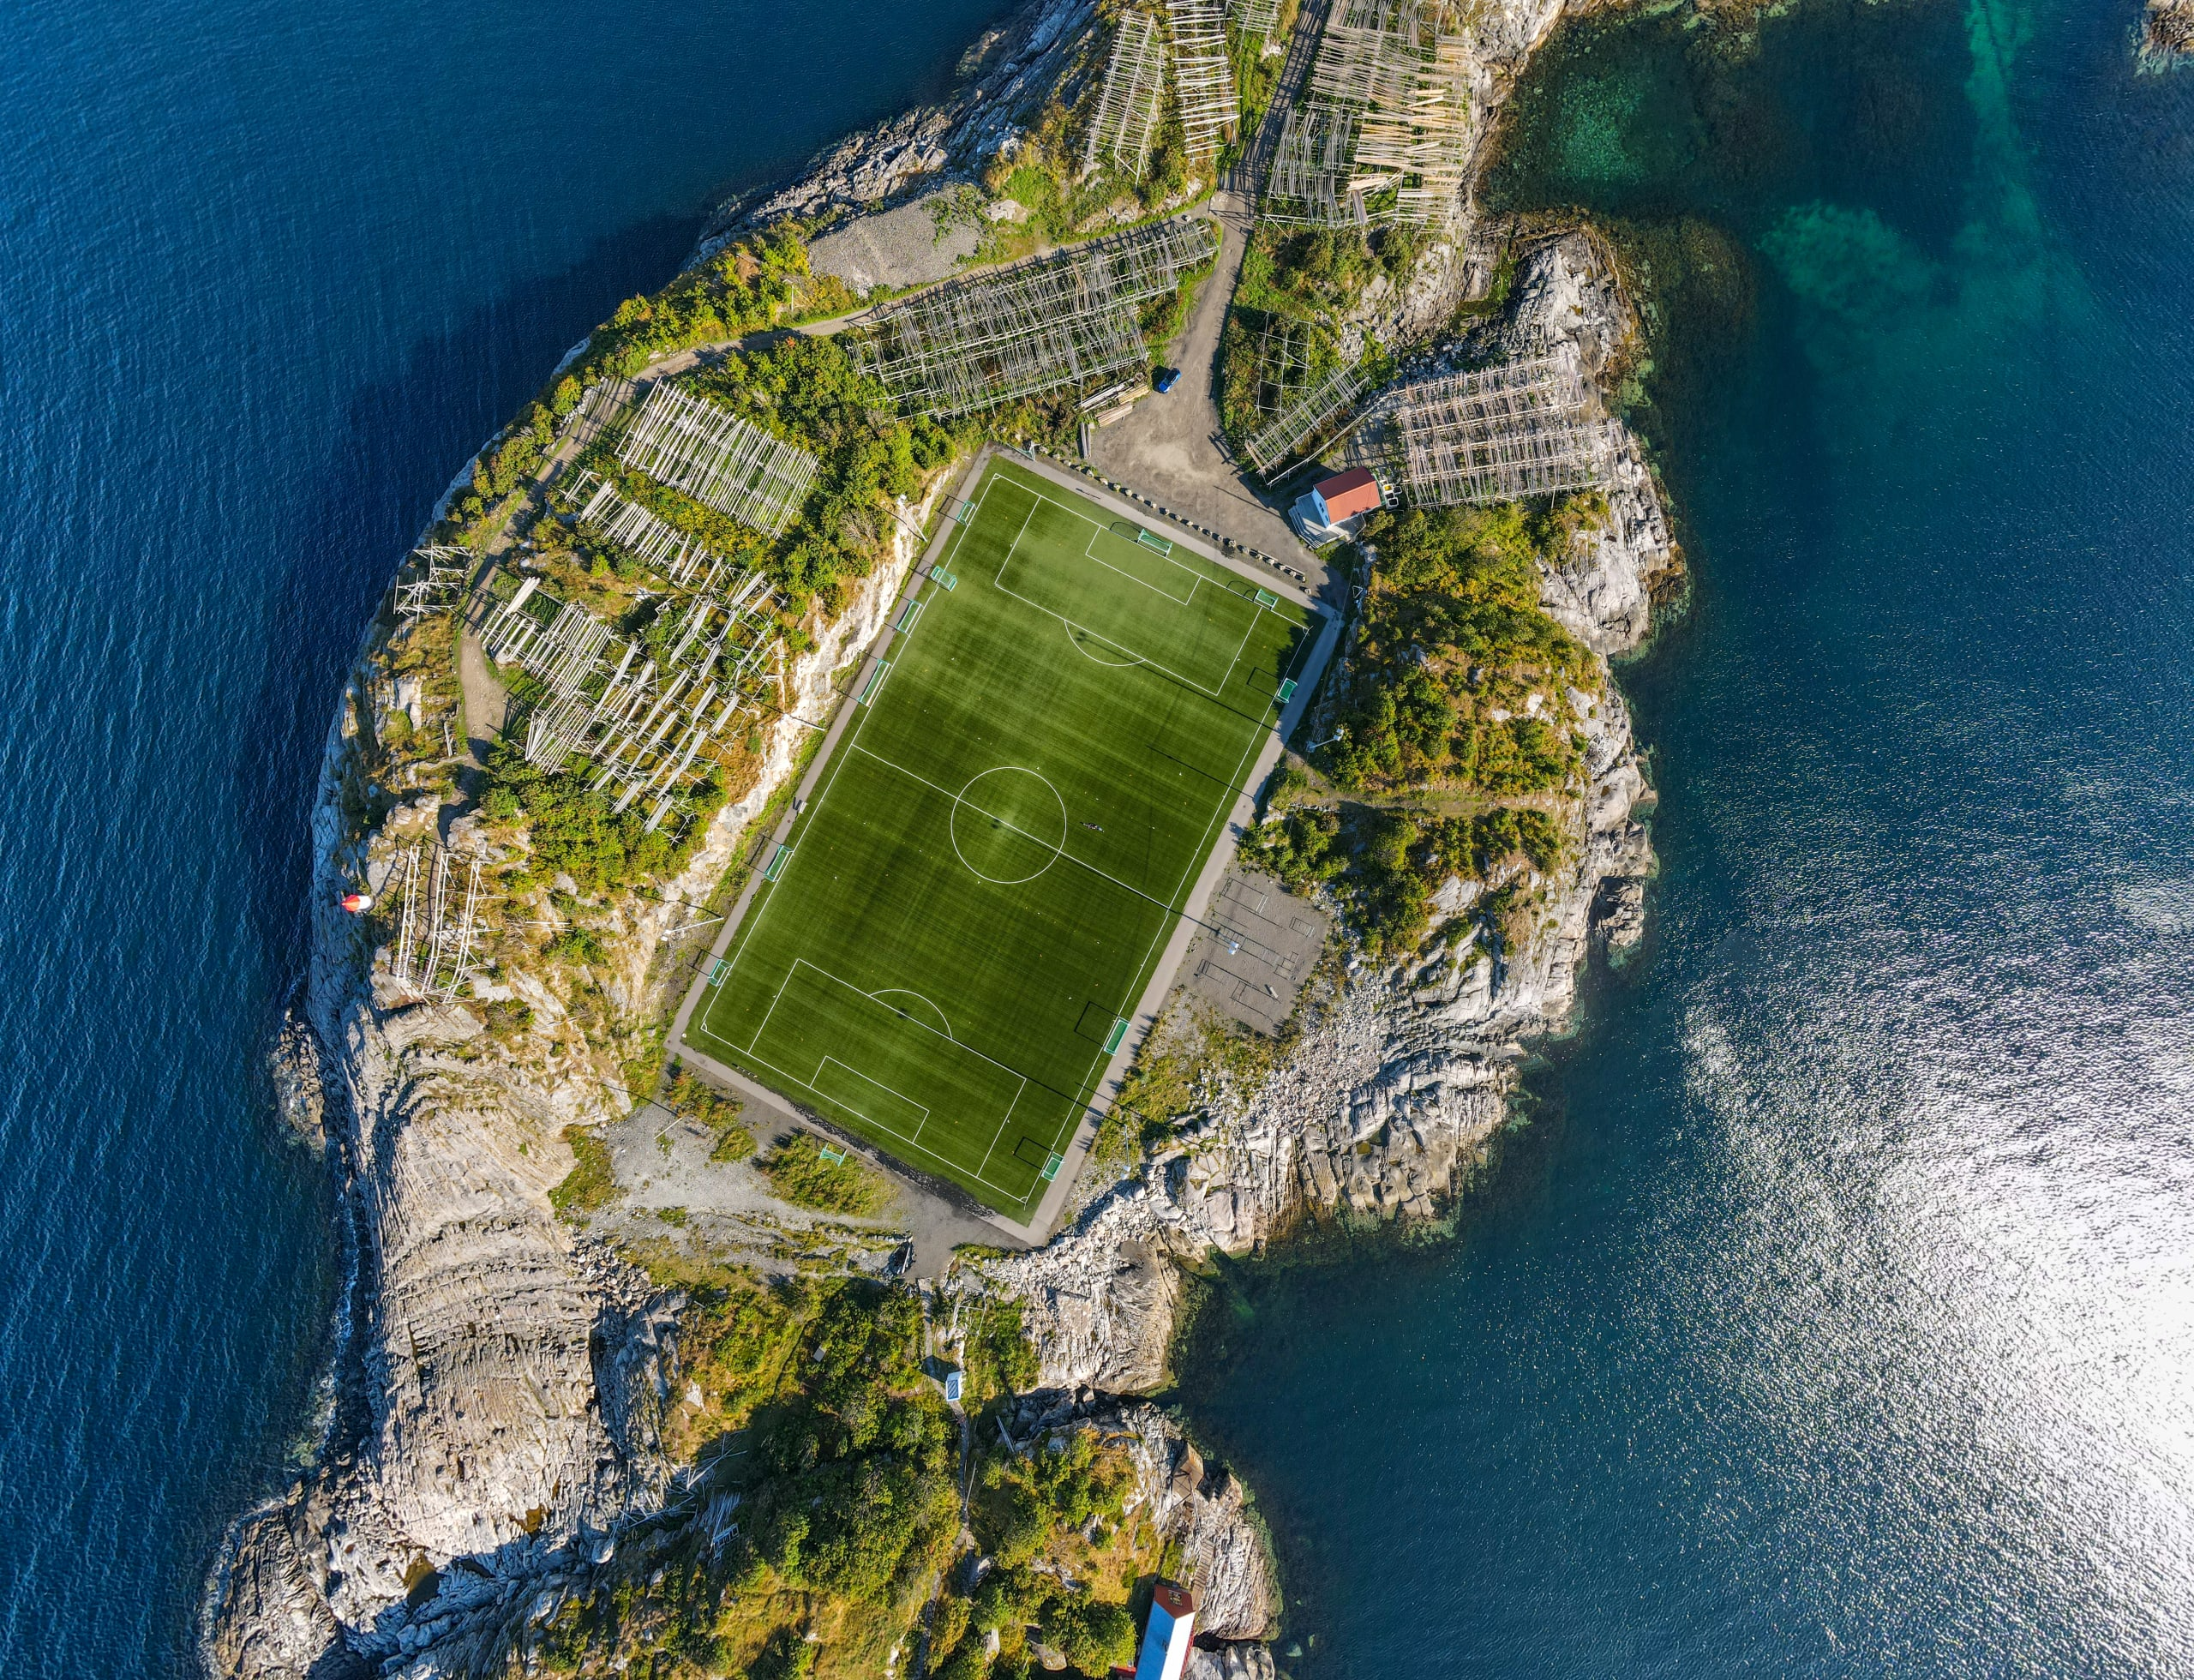 Henningsvær stadium from above